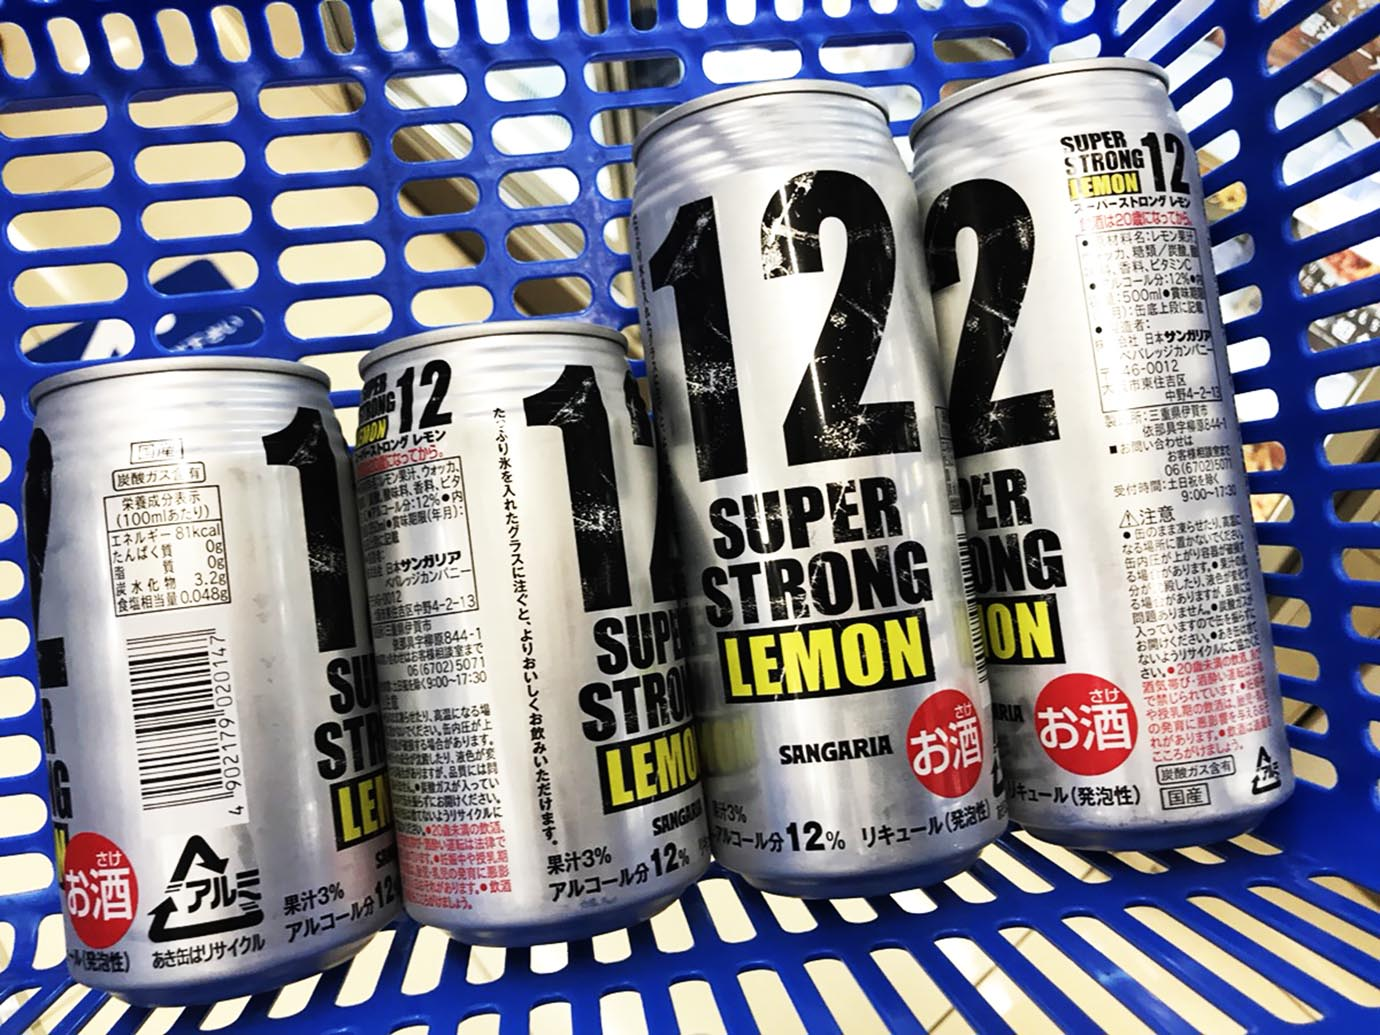 lawson-super-strong-lemon10